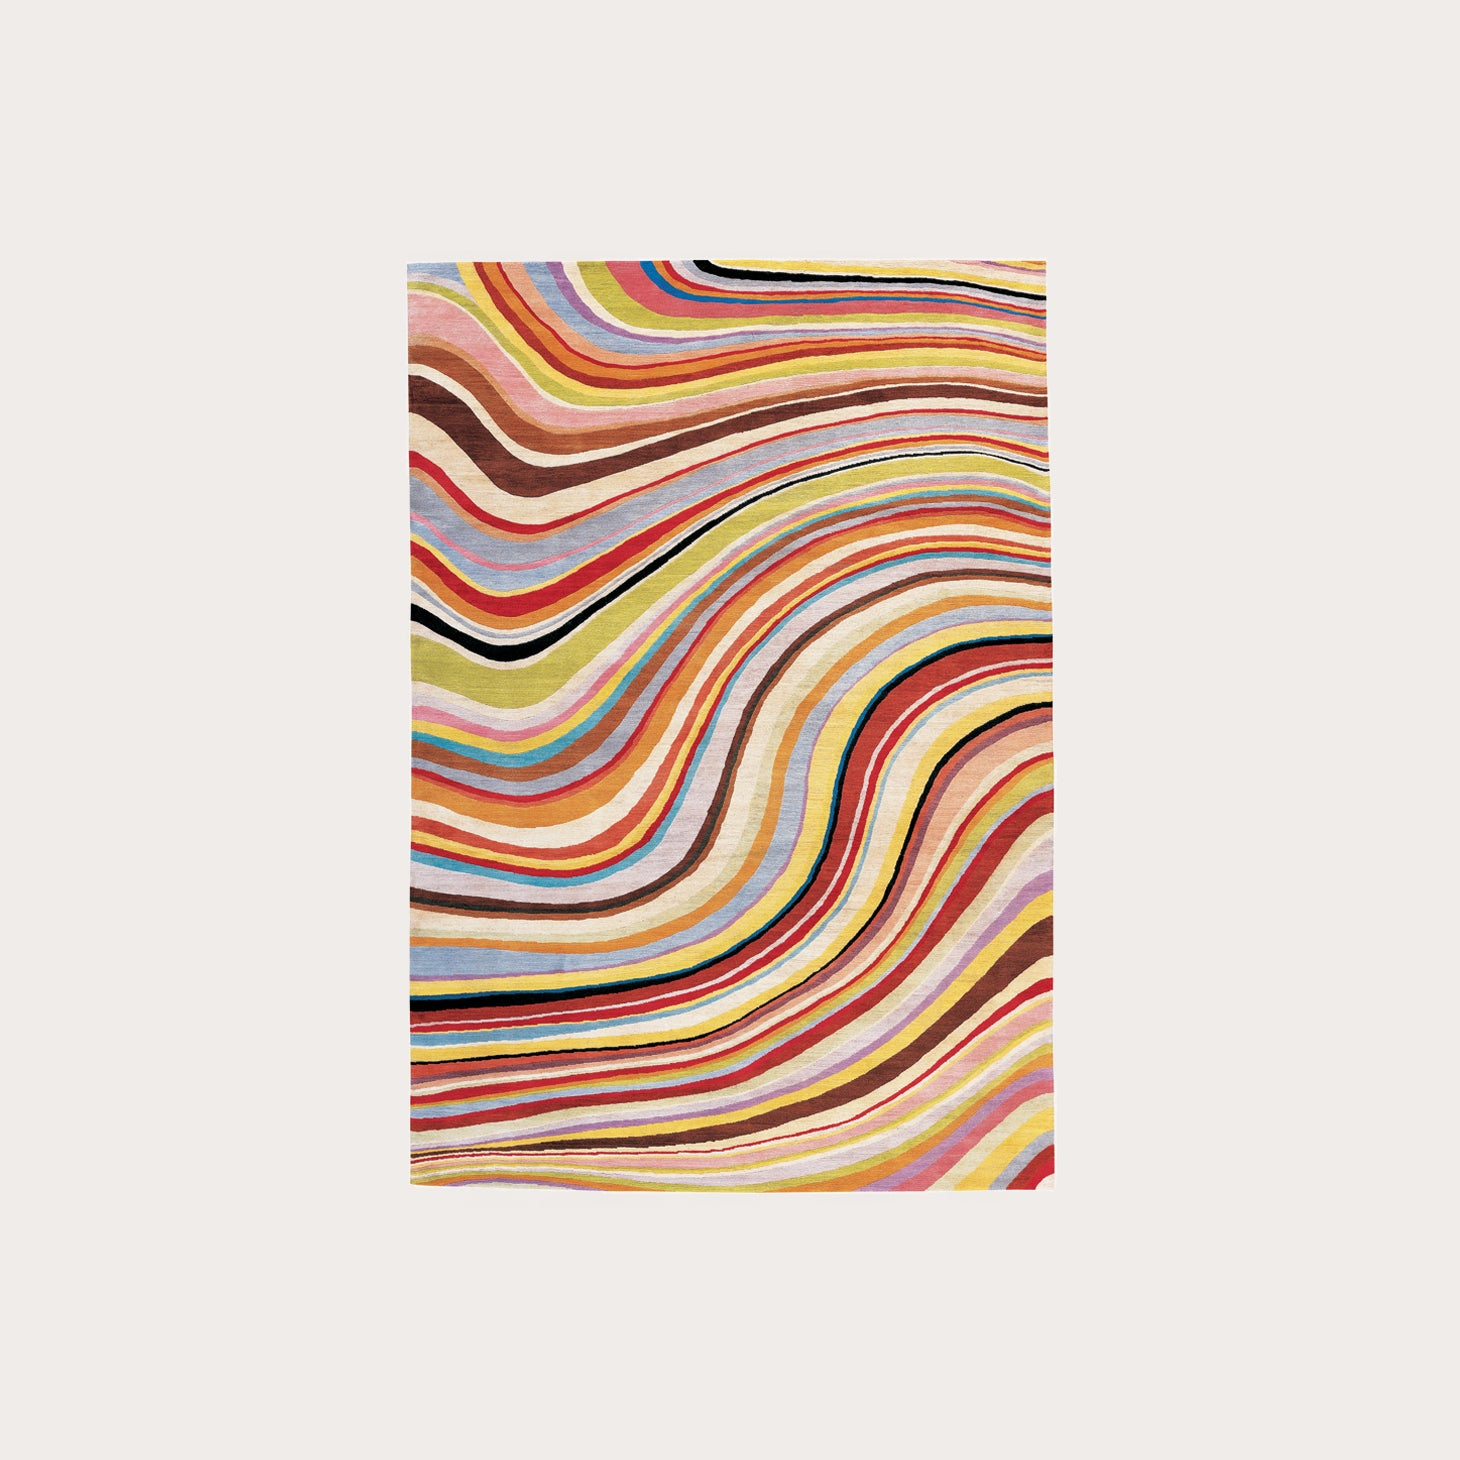 Swirl Floor Coverings Paul Smith Designer Furniture Sku: 391-150-10098